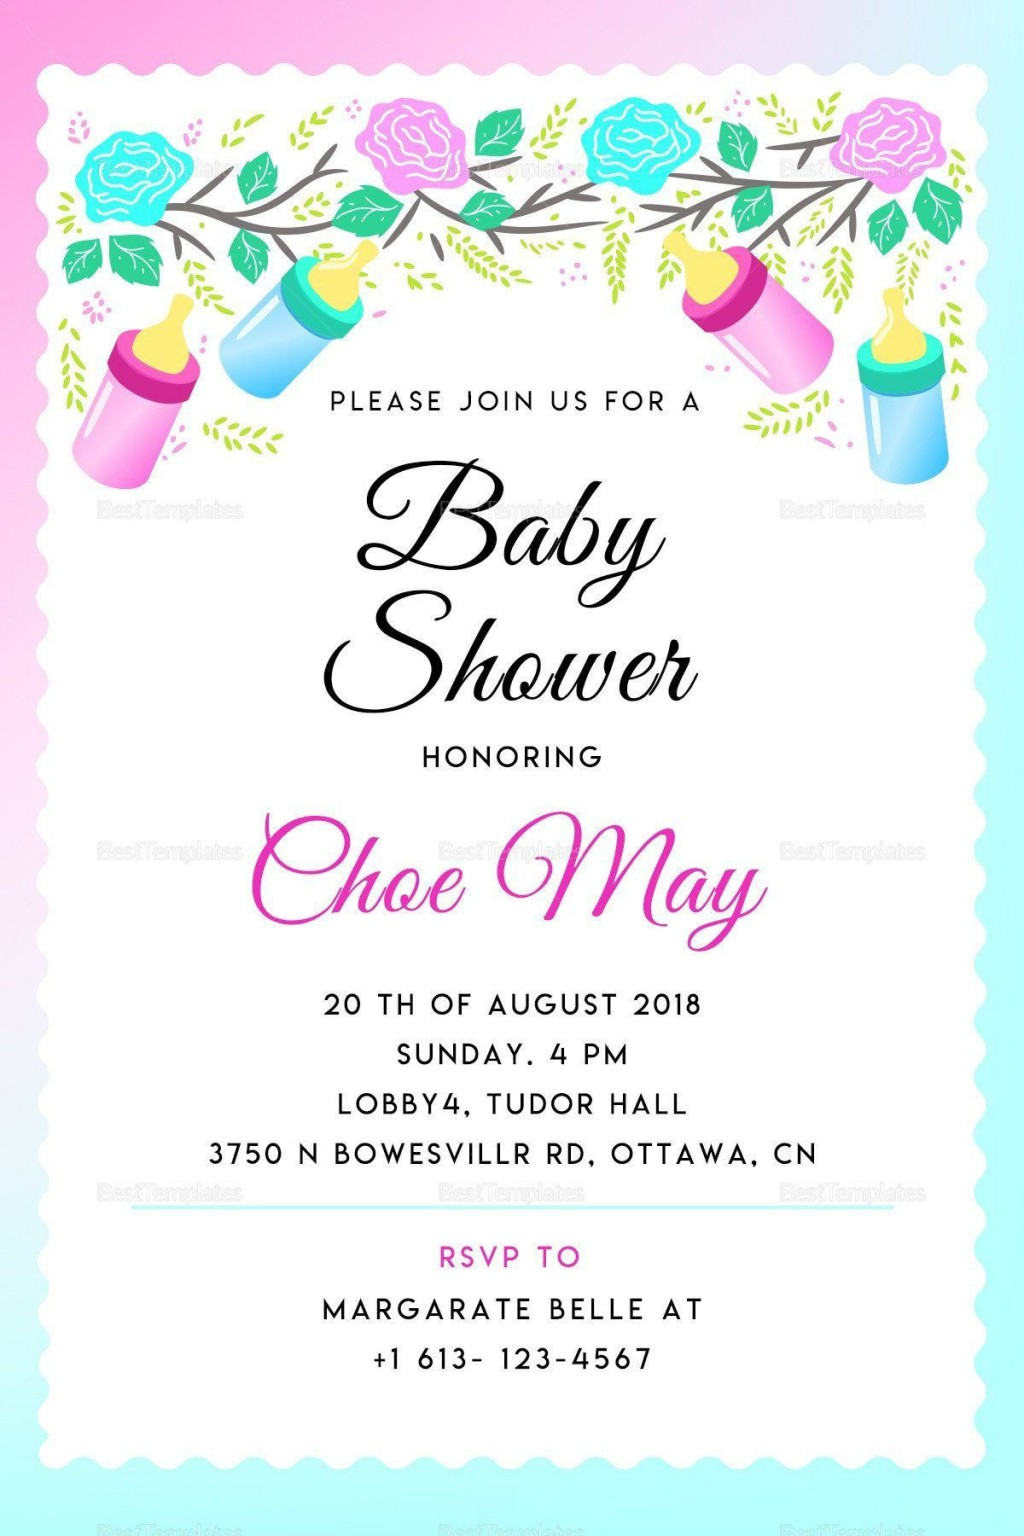 003 Incredible Baby Shower Invite Template Word Sample  Work Invitation Wording Format In M Free MicrosoftLarge